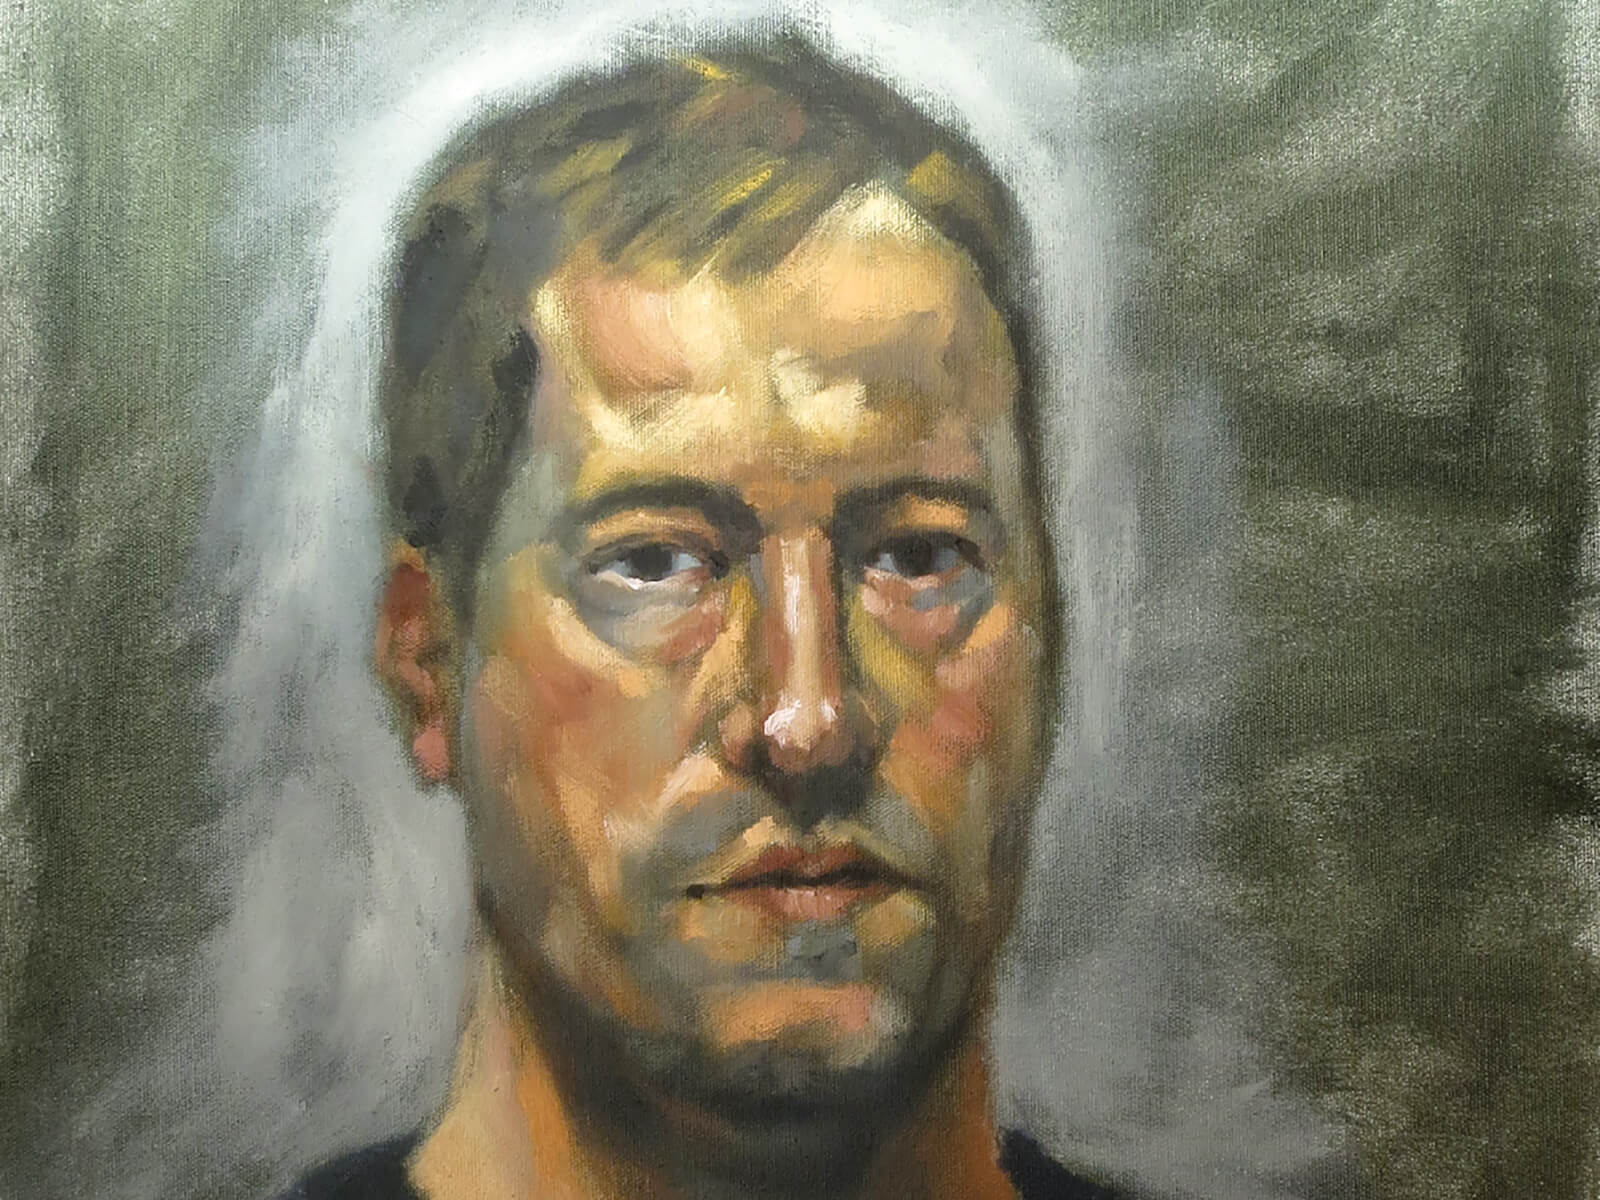 traditional painting self-portrait of the artist, a man in a black t-shirt